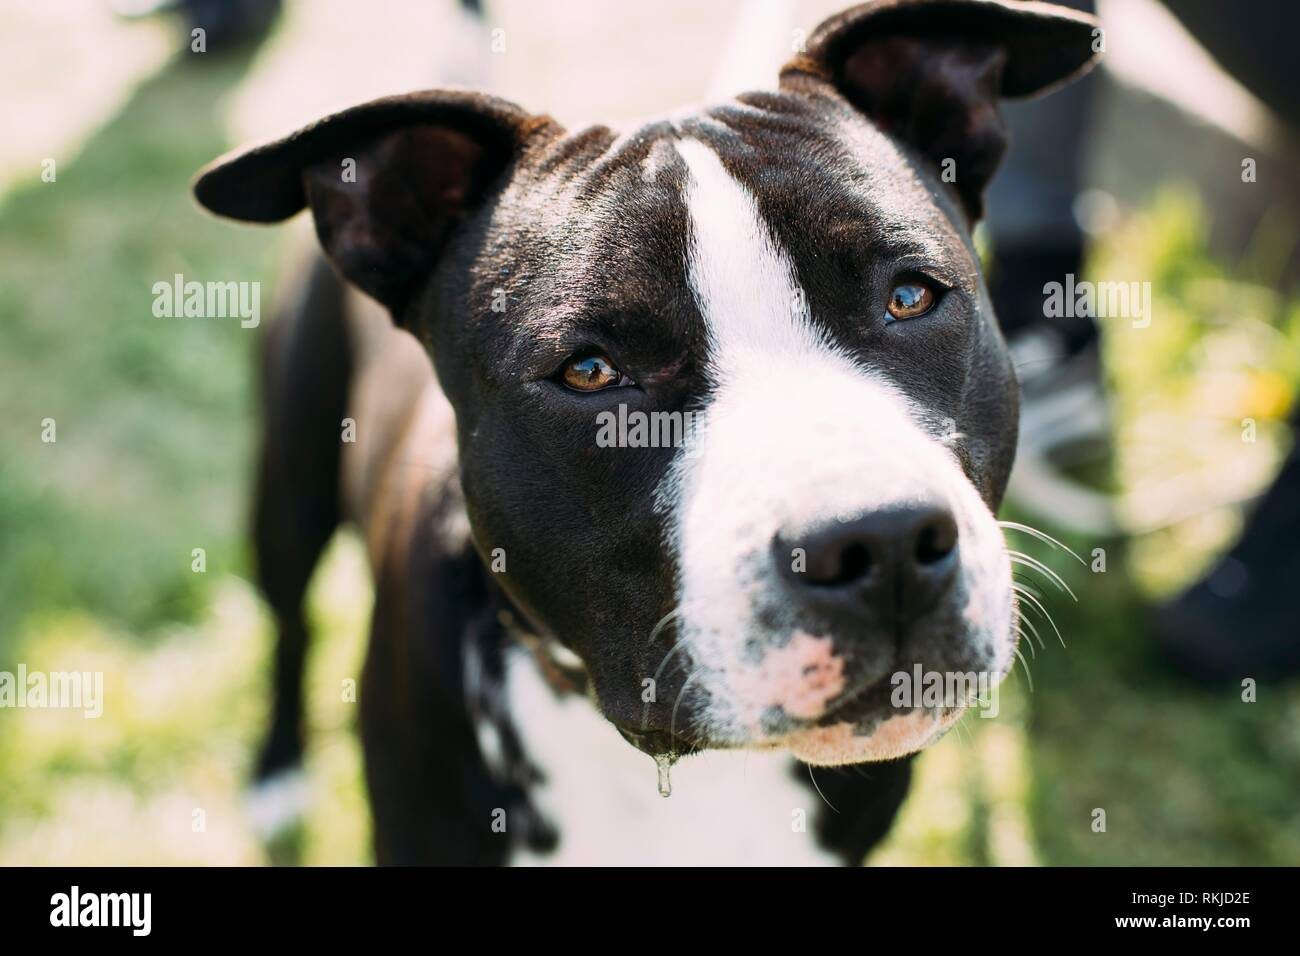 Close View Of American Staffordshire Terrier Dog. - Stock Image